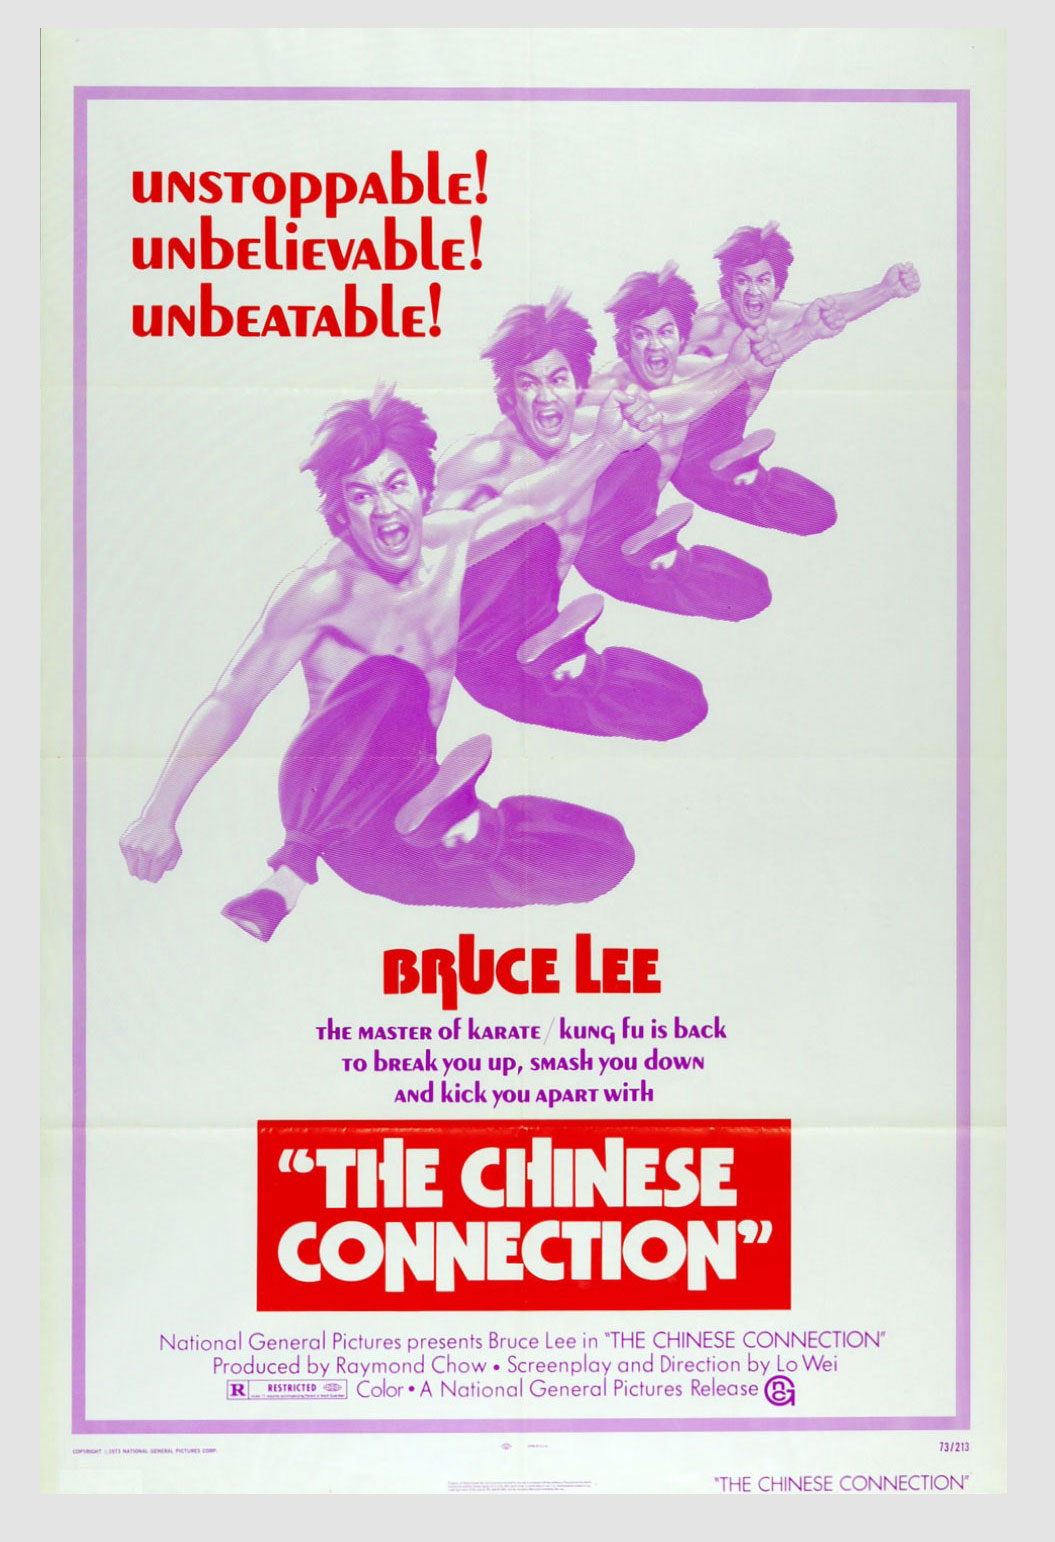 Bruce Lee Movie Poster 1972 Fist of Fury 24 x 41